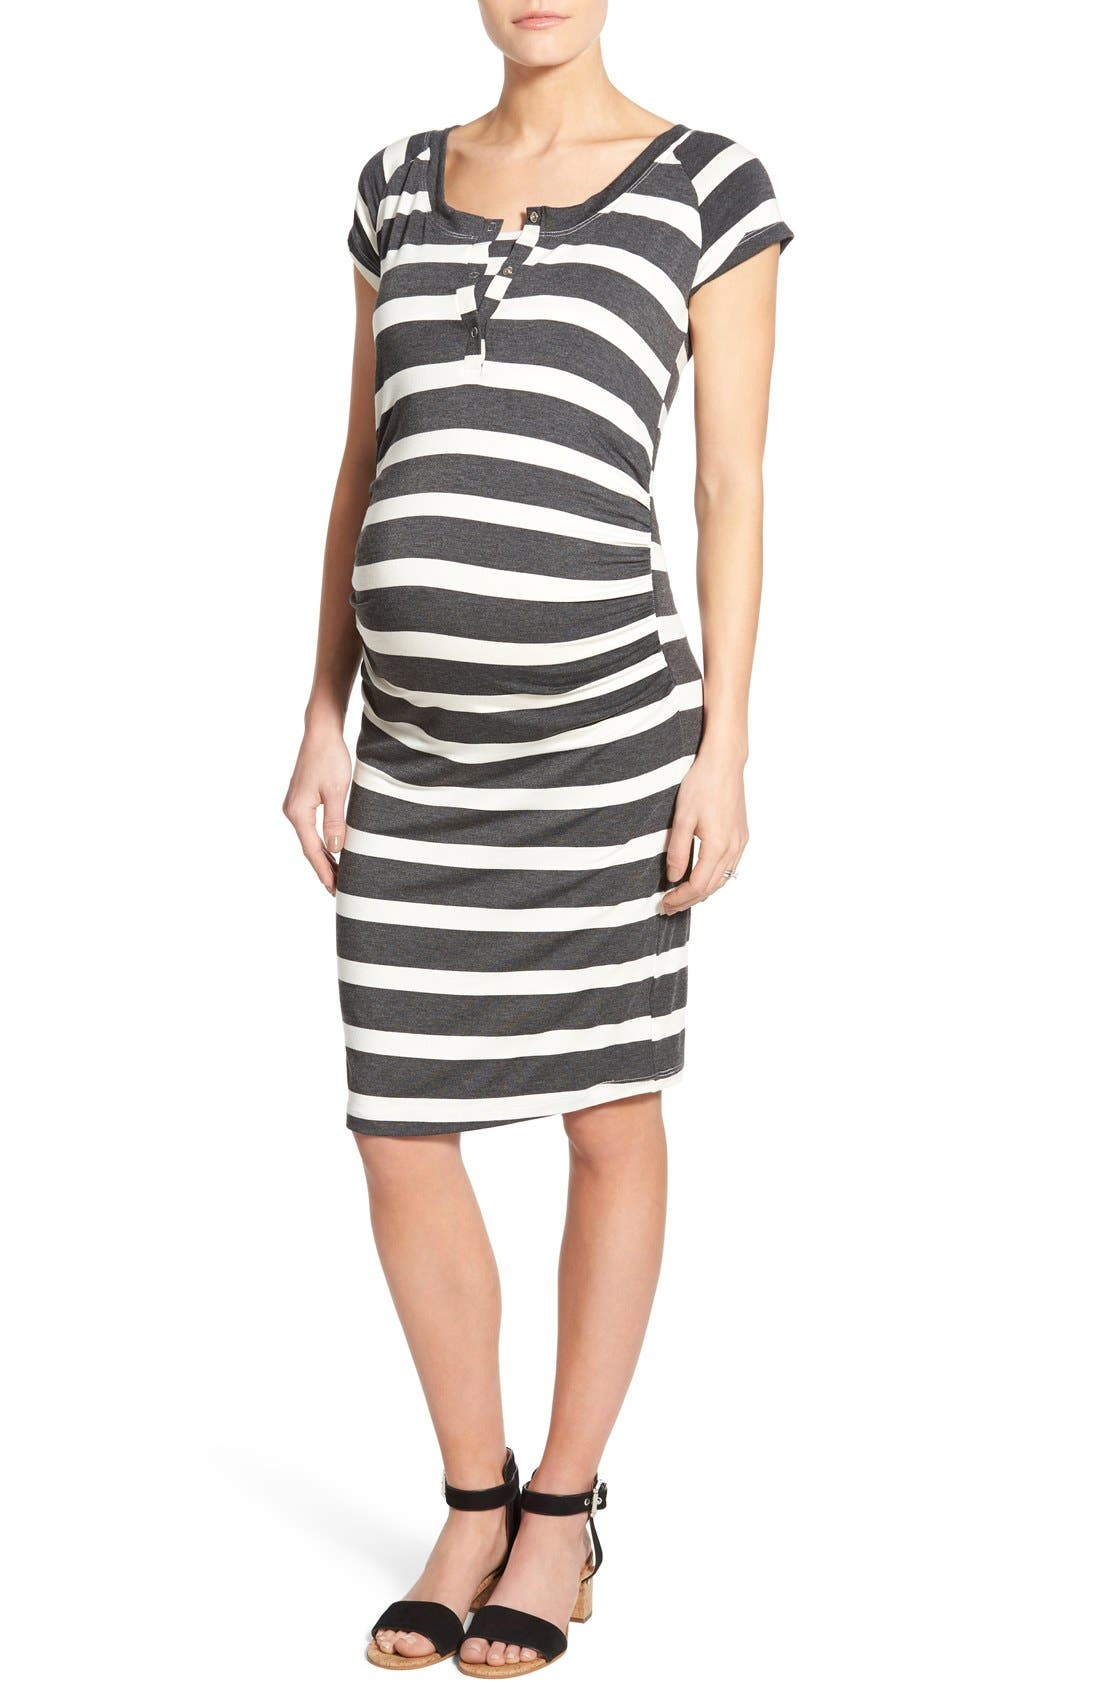 LAB40 'Toni' Maternity/Nursing Midi Dress